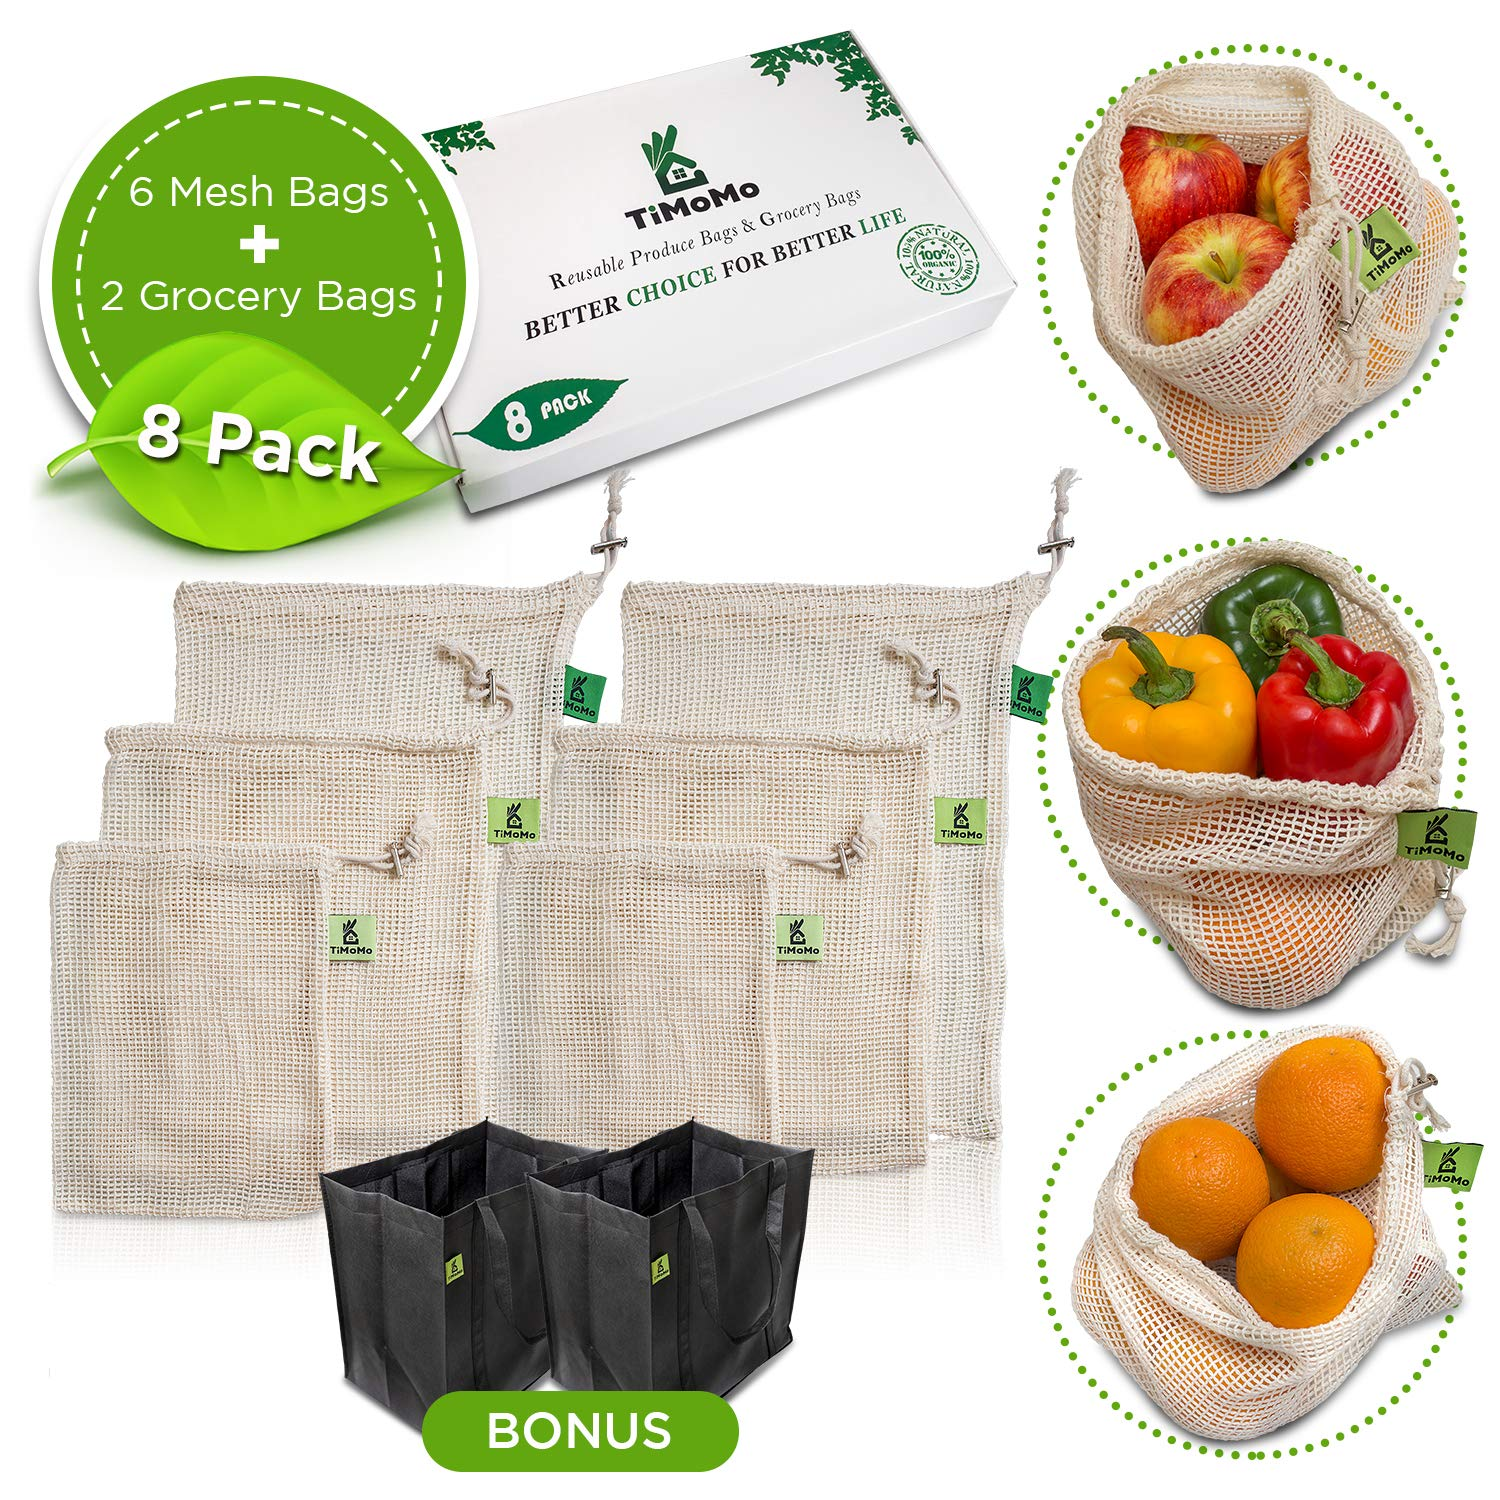 Reusable Produce Bags With Reusable Grocery Bags - Environmentally Friendly Organic Cotton Mesh Bags Bundled With Grocery Bags - Double Stitching, Durable, Easy To Clean, Machine Washable